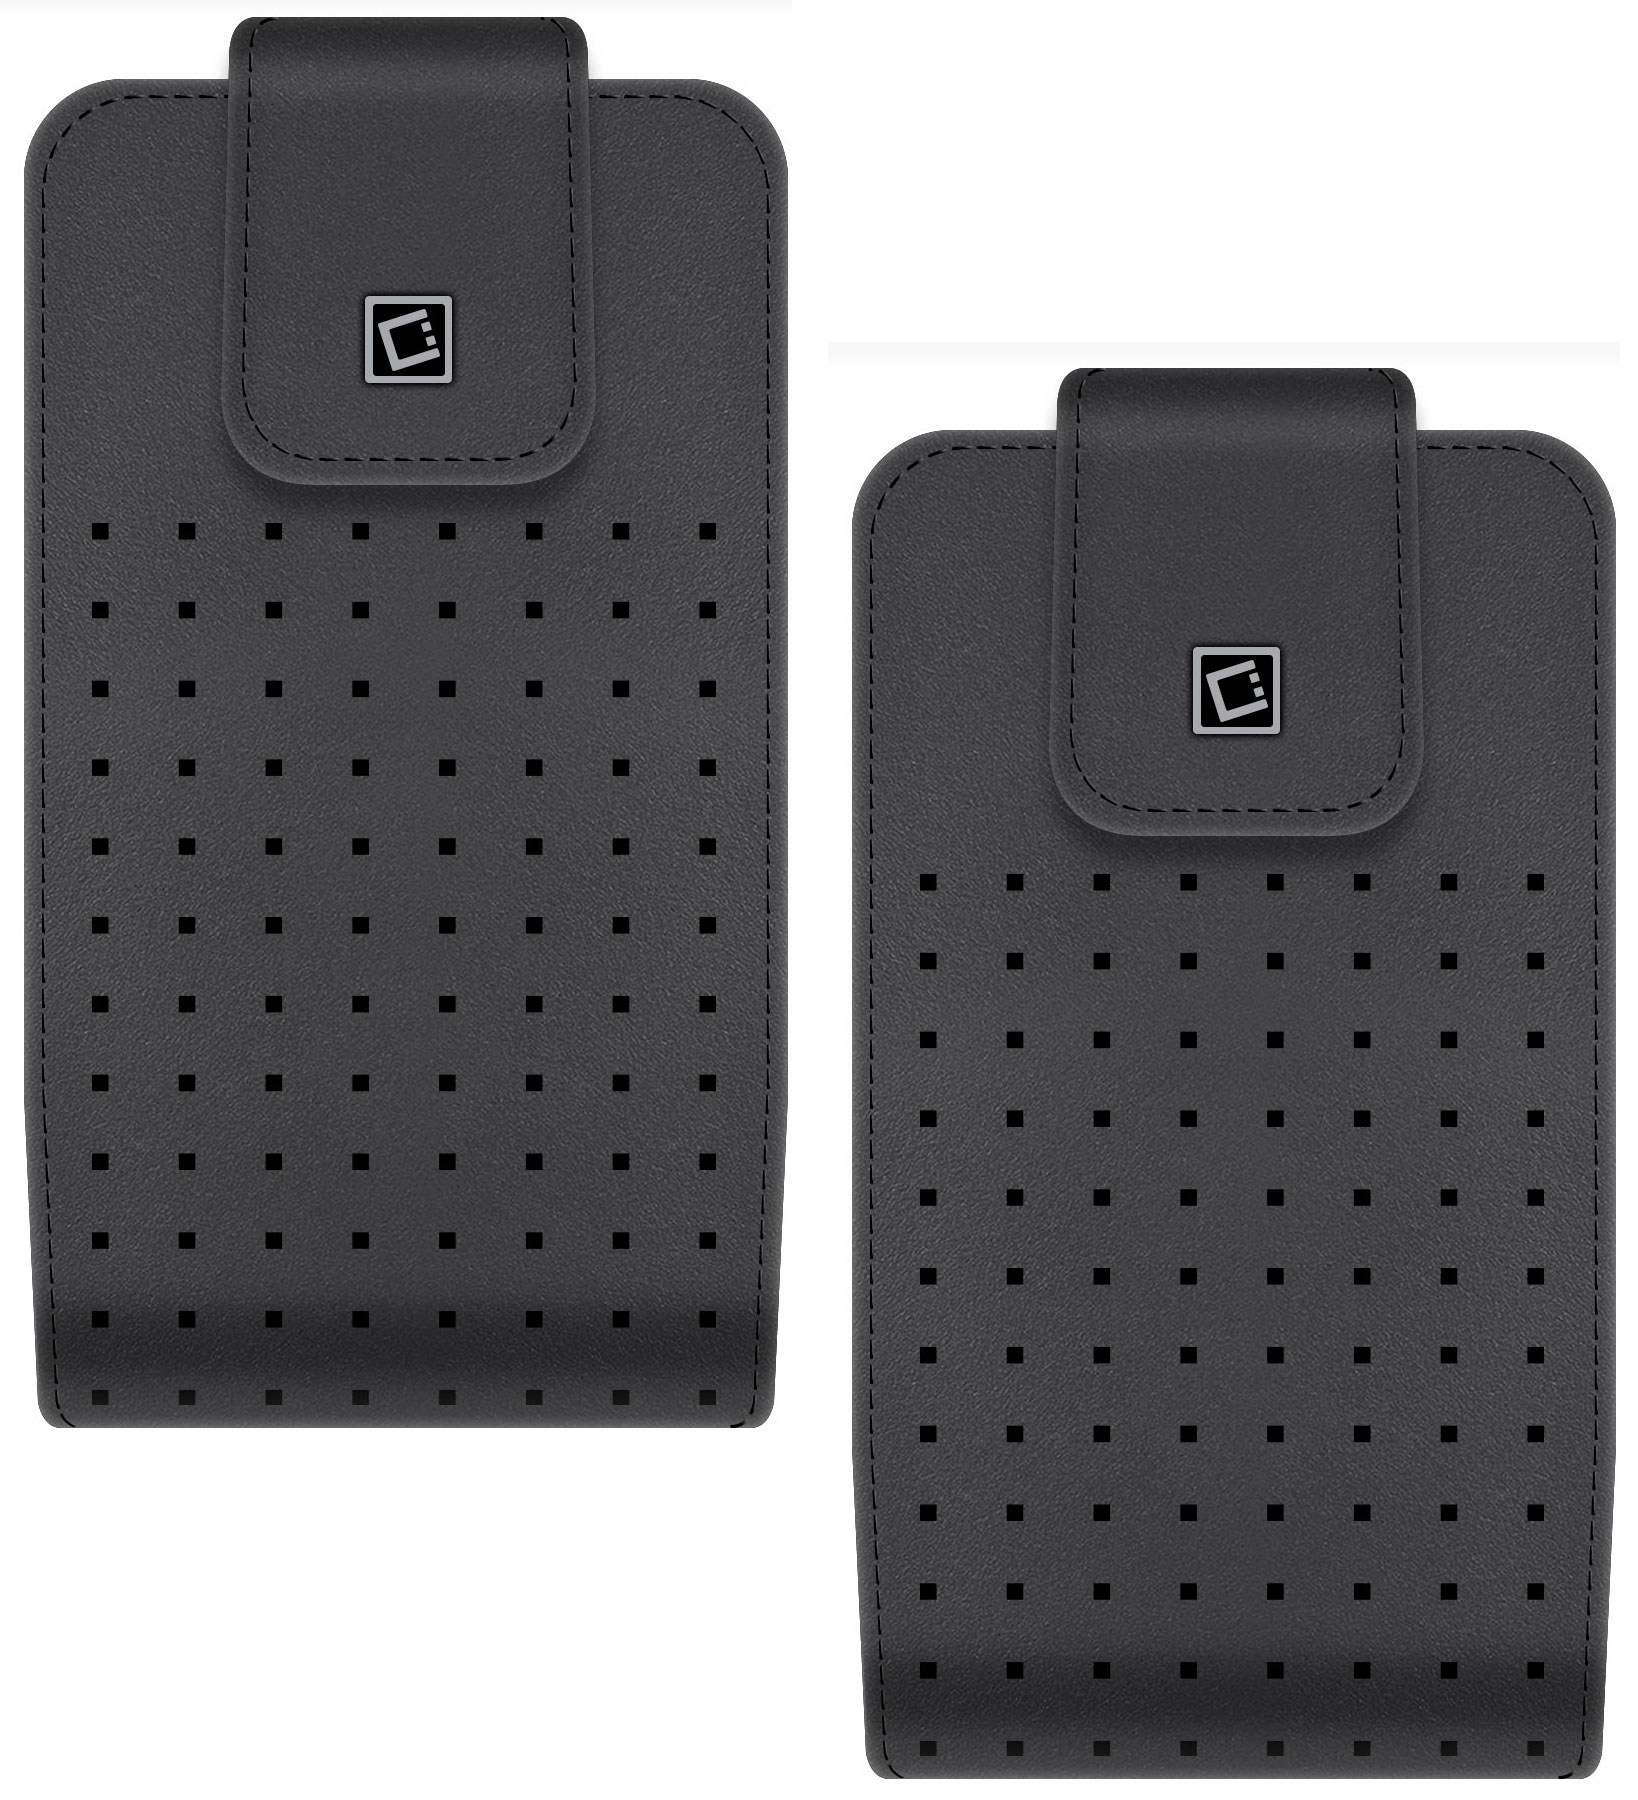 LG K40 Teramo Leather Case Swivel Clip Black Pack Of 2